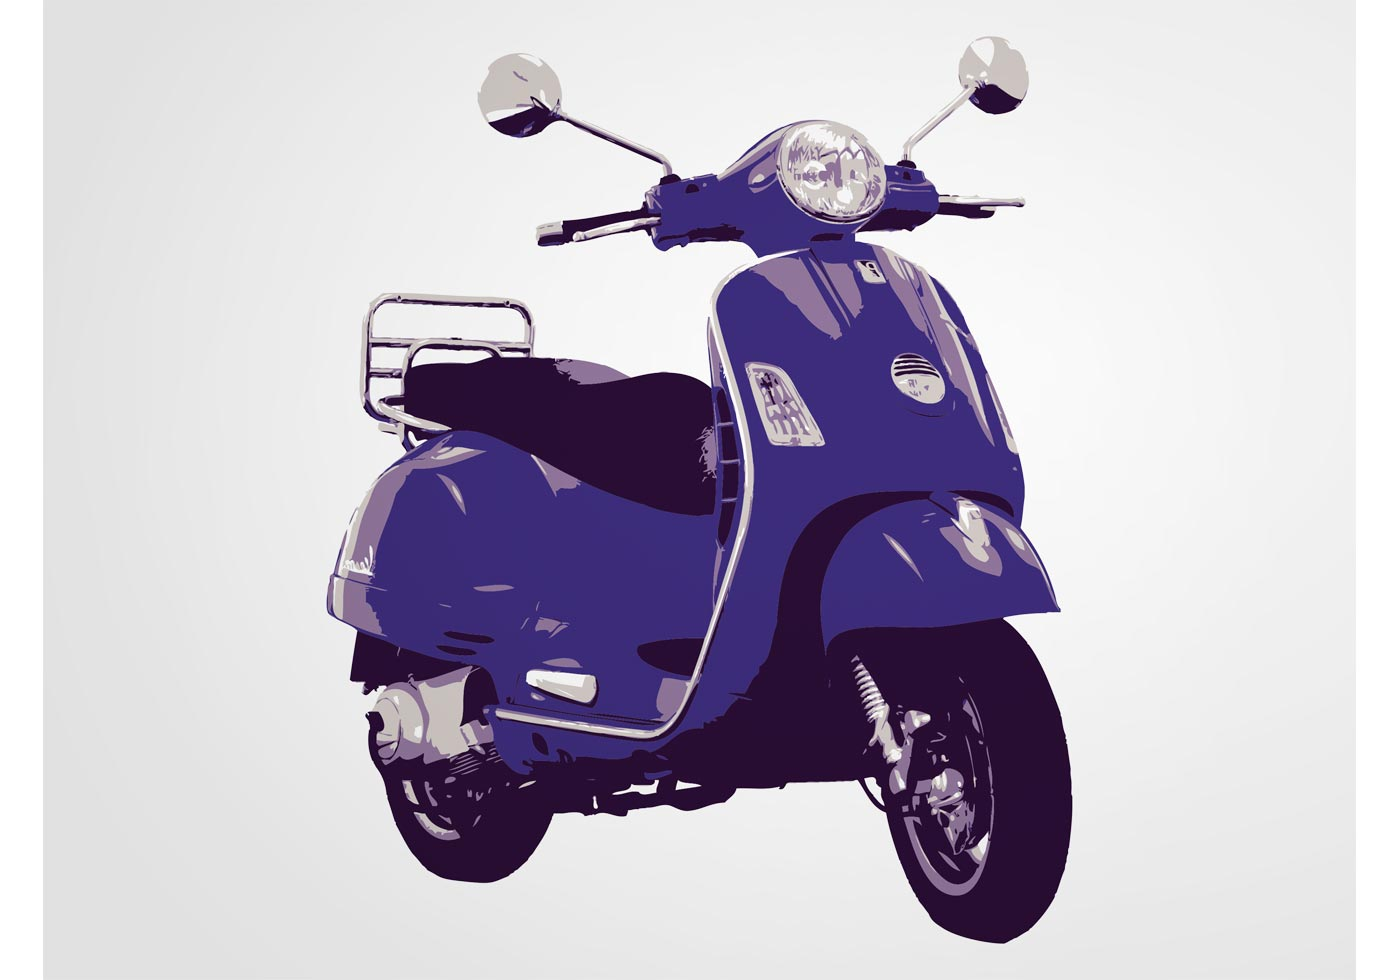 Vespa Scooter Free Vector Art 171 Free Downloads